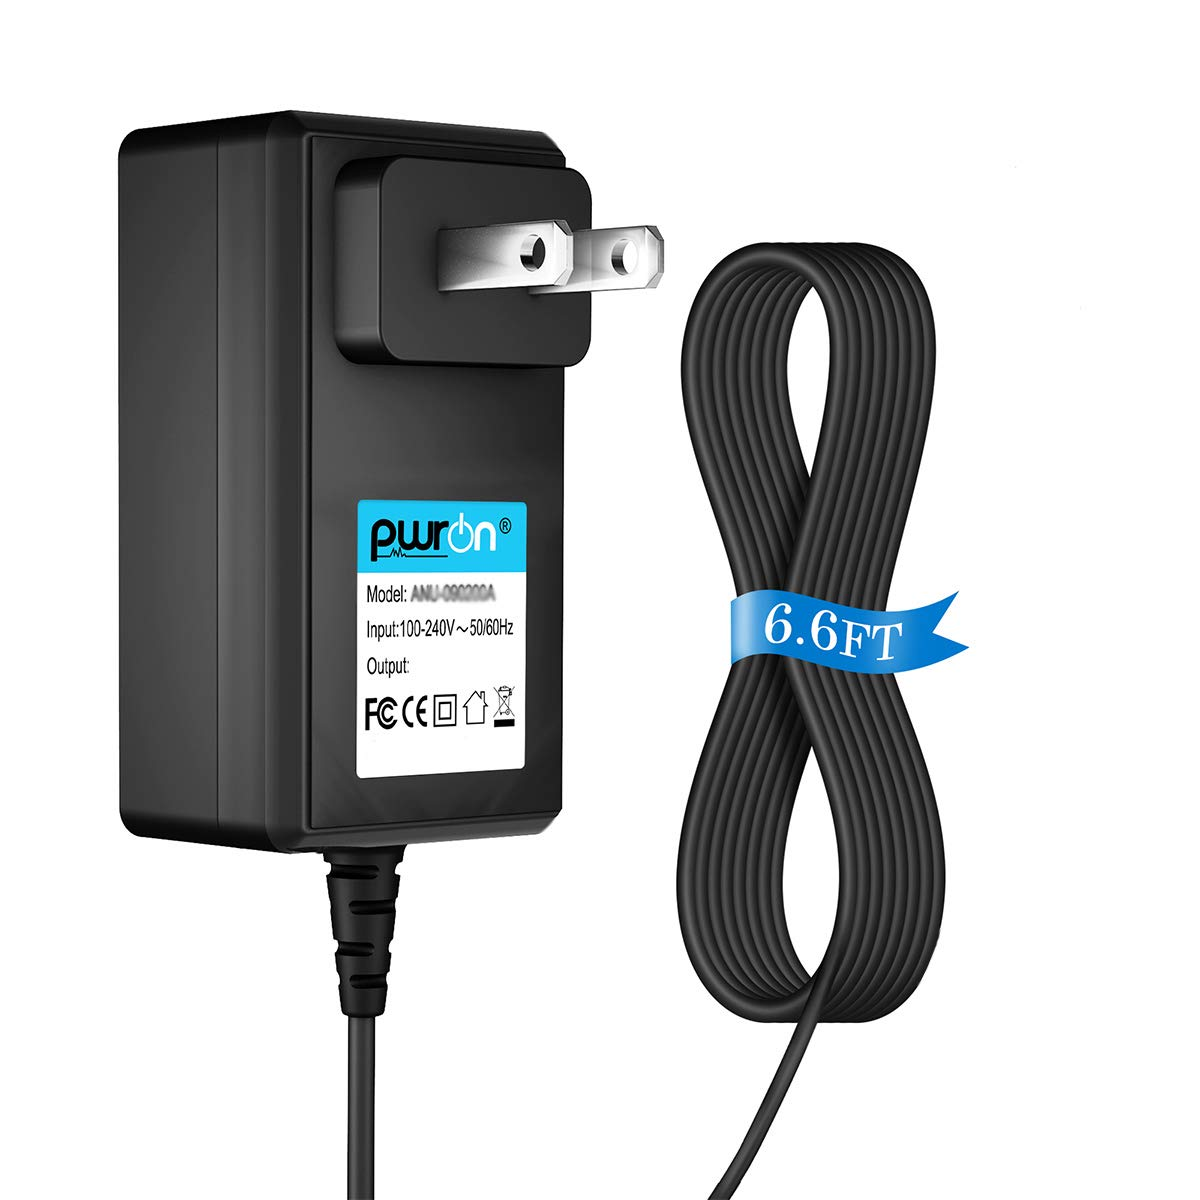 Amazon.com: PwrON (6.6FT Cable) AC Adapter for Halex 64469 ... on